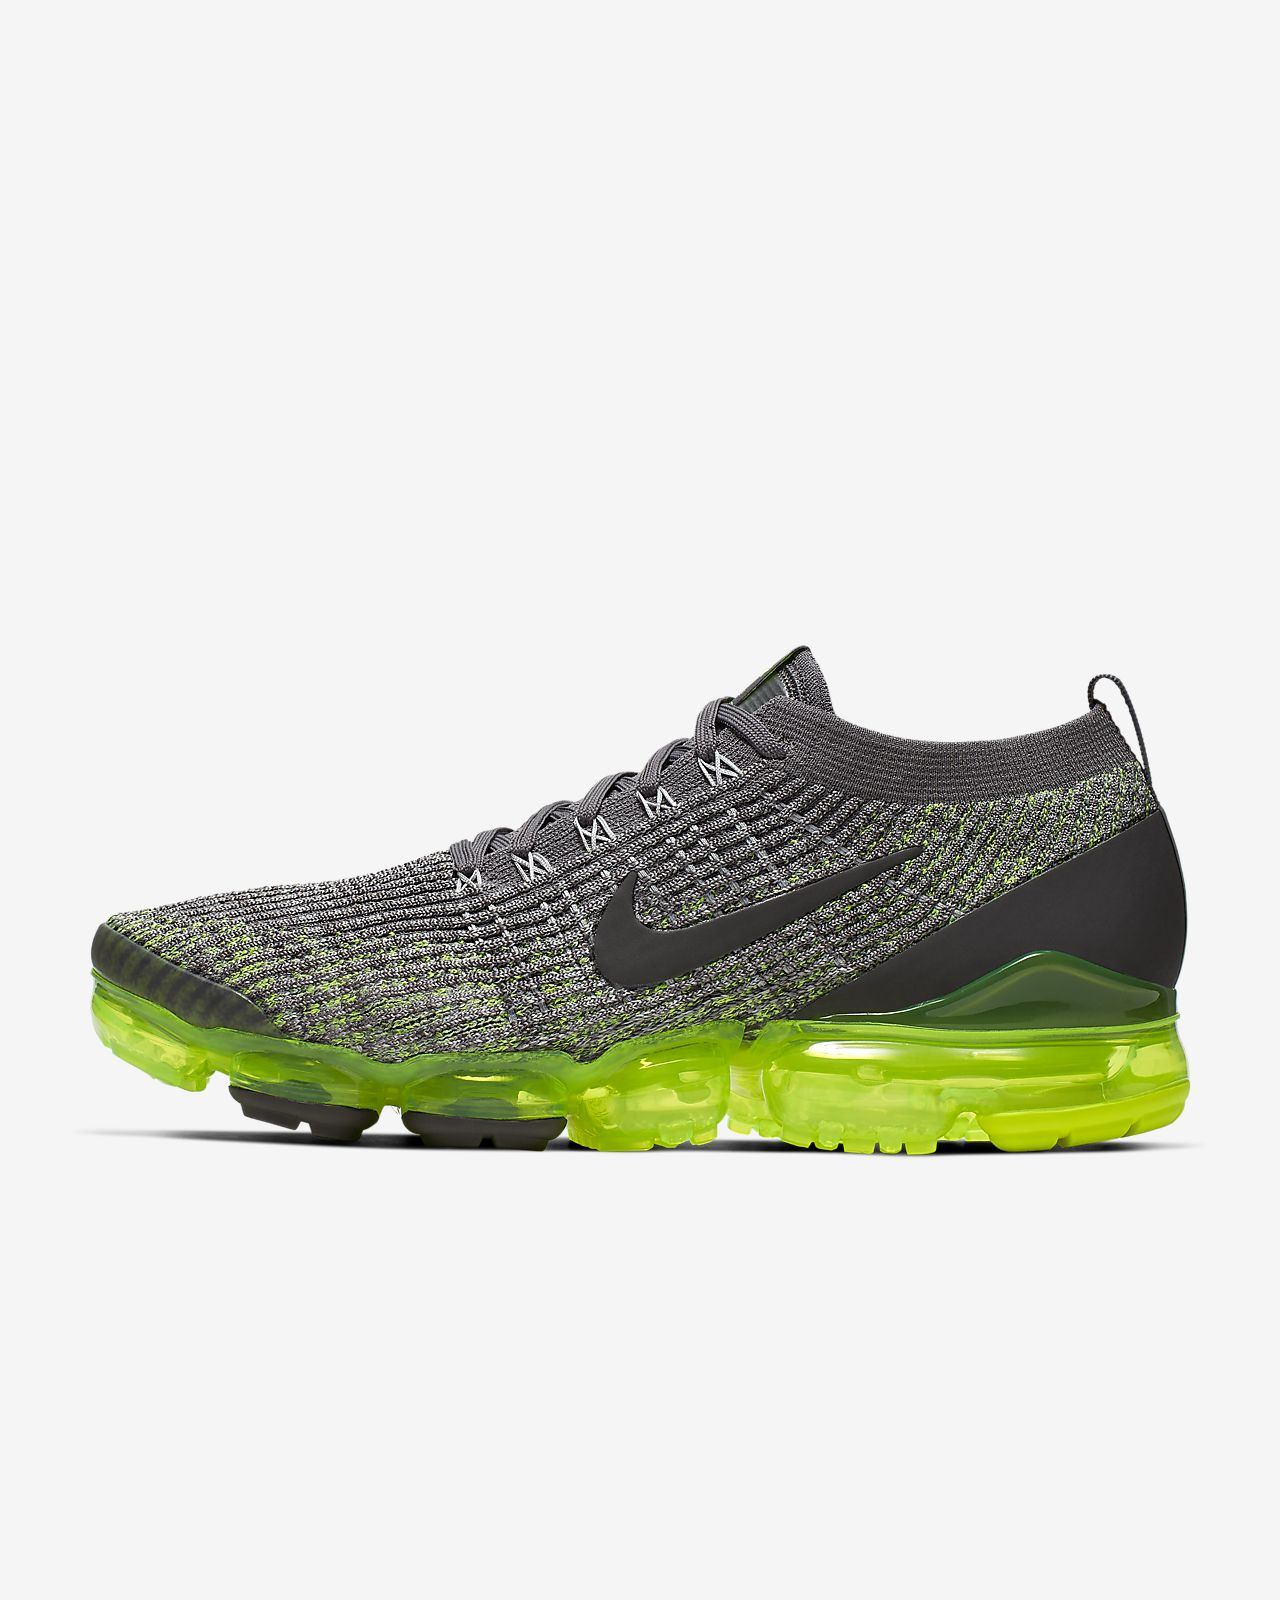 Pour 3 Homme Nike Chaussure V76yfgby Vapormax Air Flyknit E9YW2eHbDI